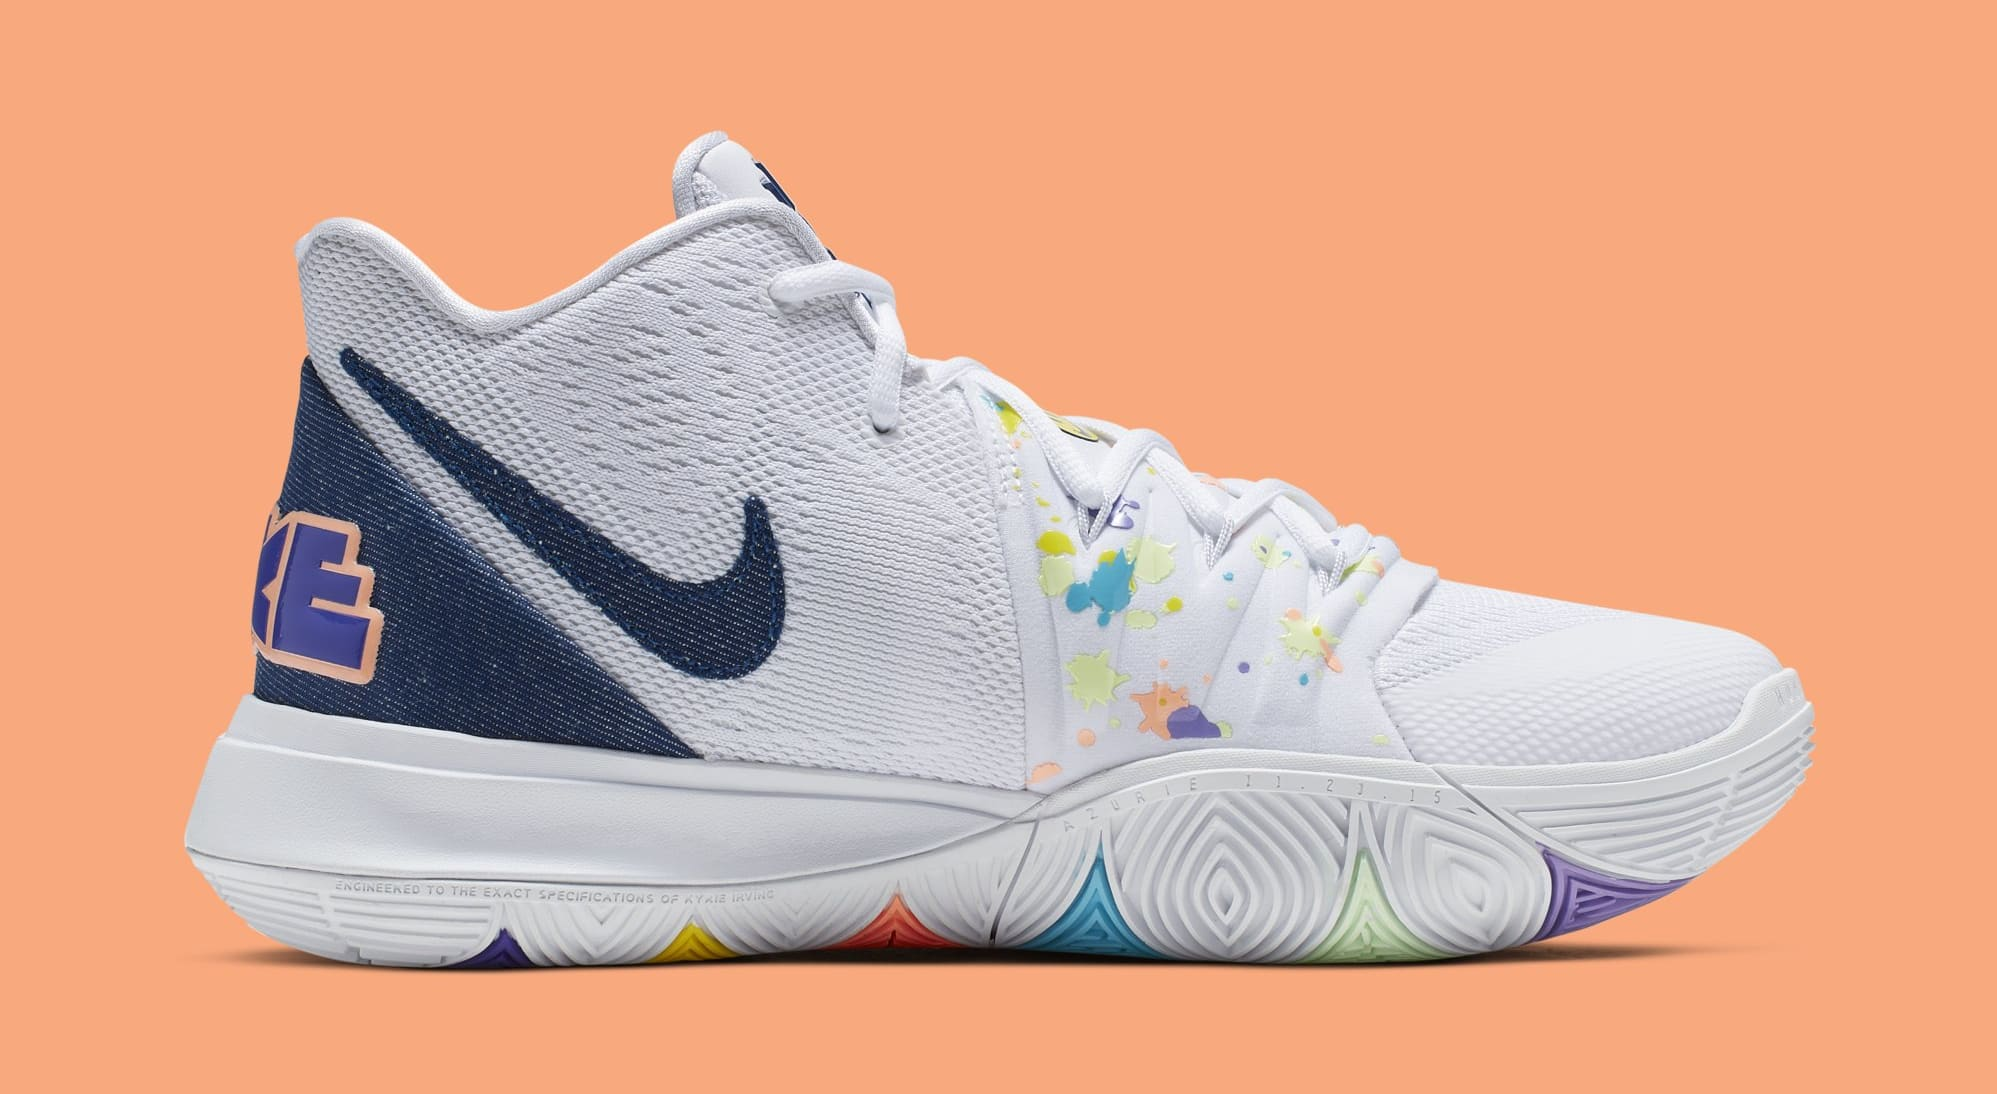 dd59a681ee711 Nike Kyrie 5 'Have a Nike Day' White/Deep Royal-Glacier Blue AO2919 ...